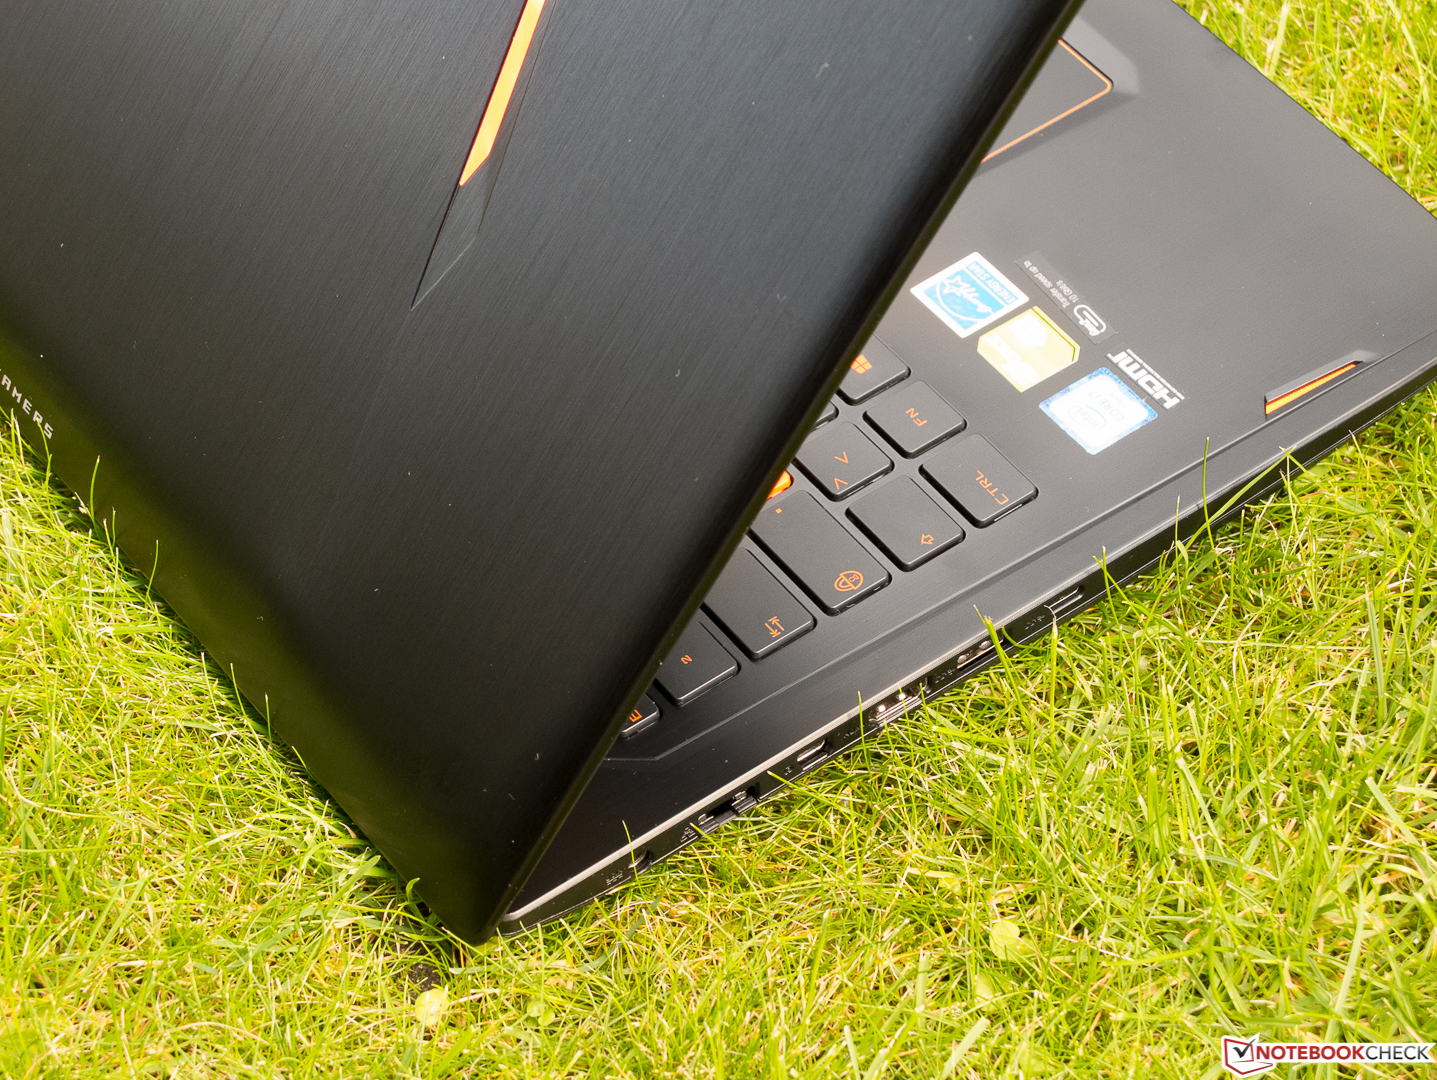 Asus ROG Strix GL502VS Notebook Review - NotebookCheck.net Reviews